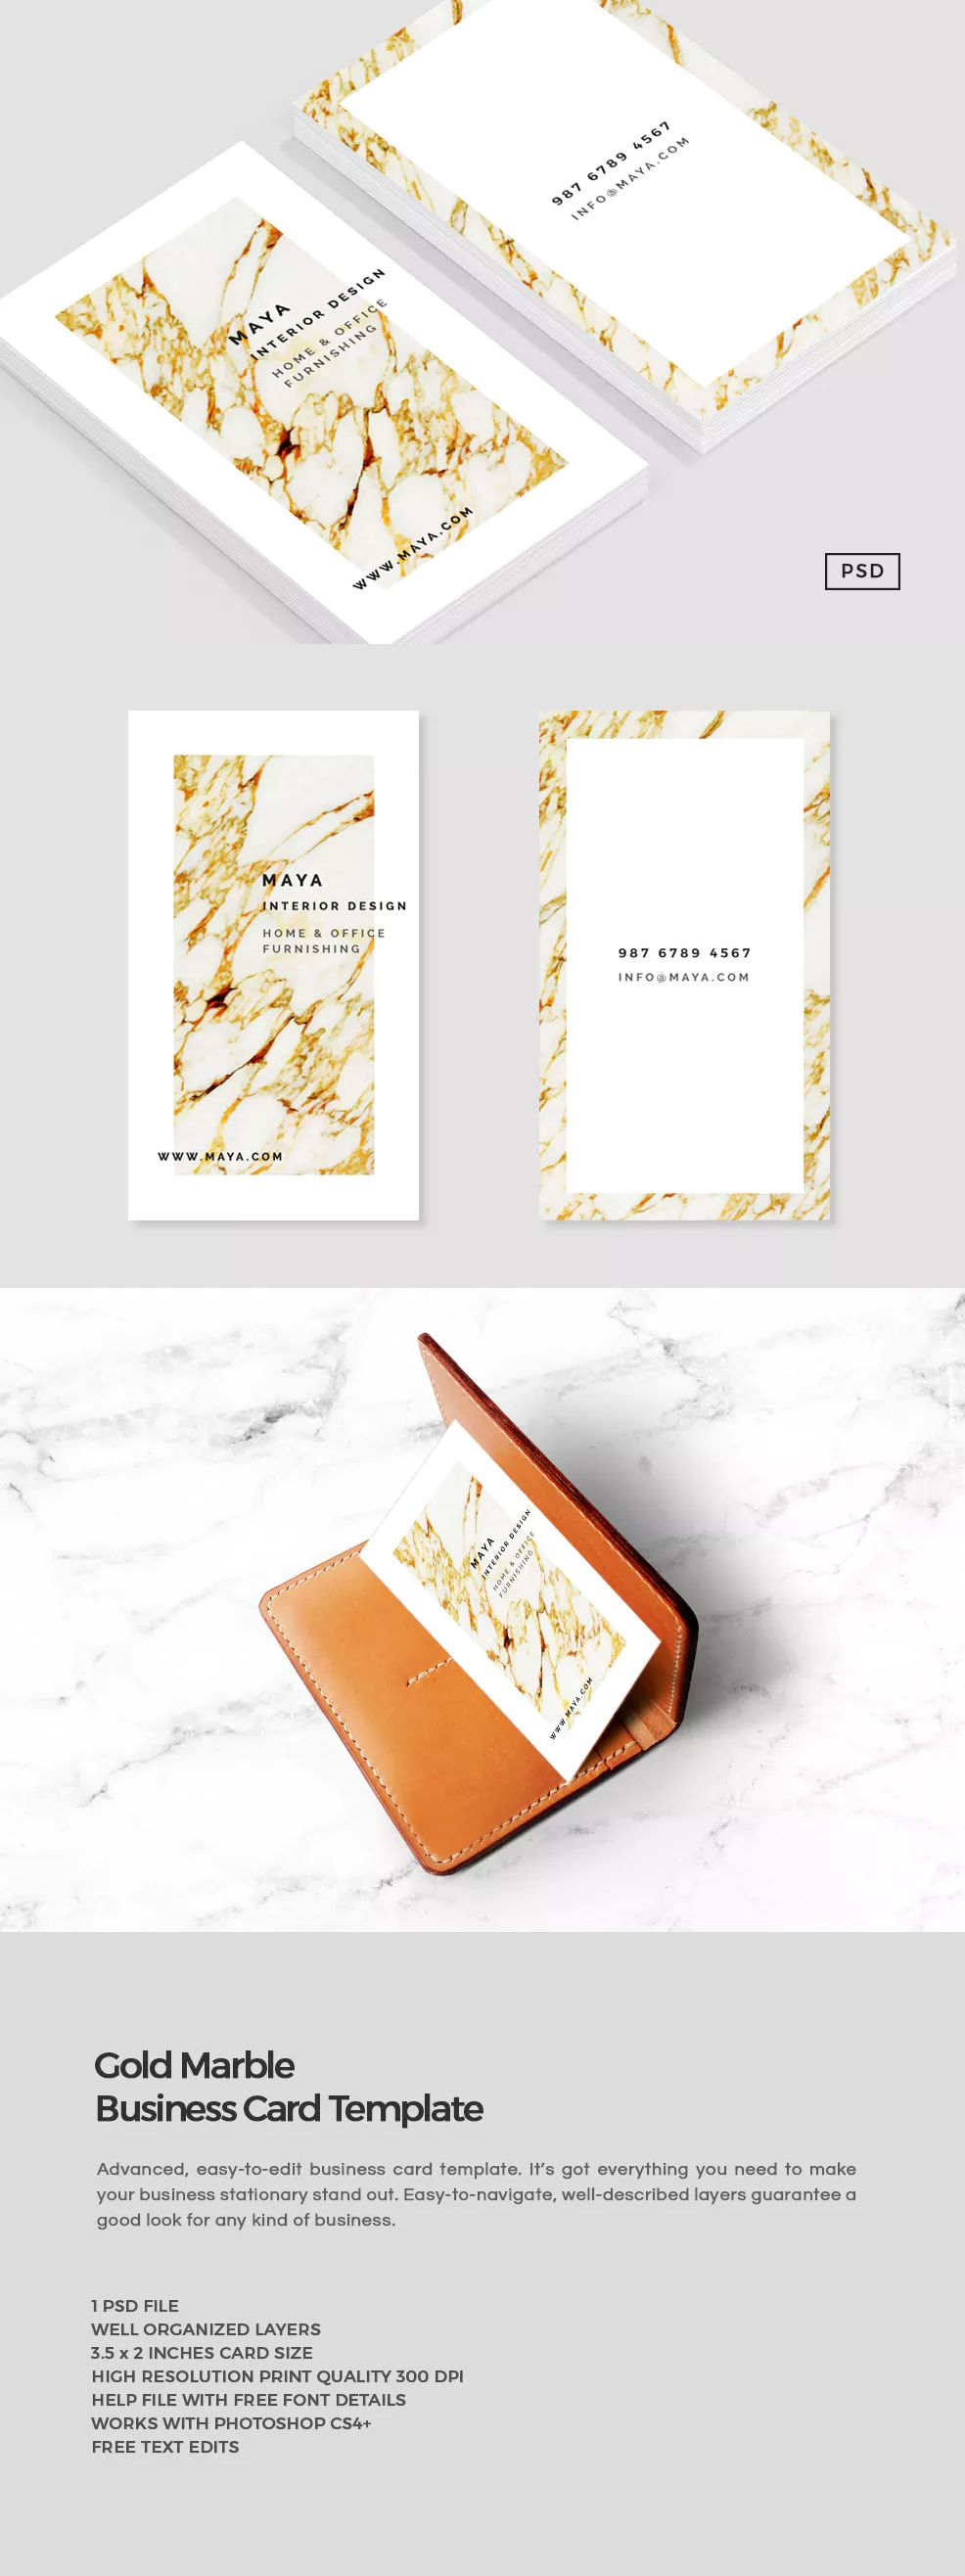 Business card templates photoshop cs4 choice image card design and gold marble business card template psd business card tempaltes gold marble business card template psd reheart reheart Image collections